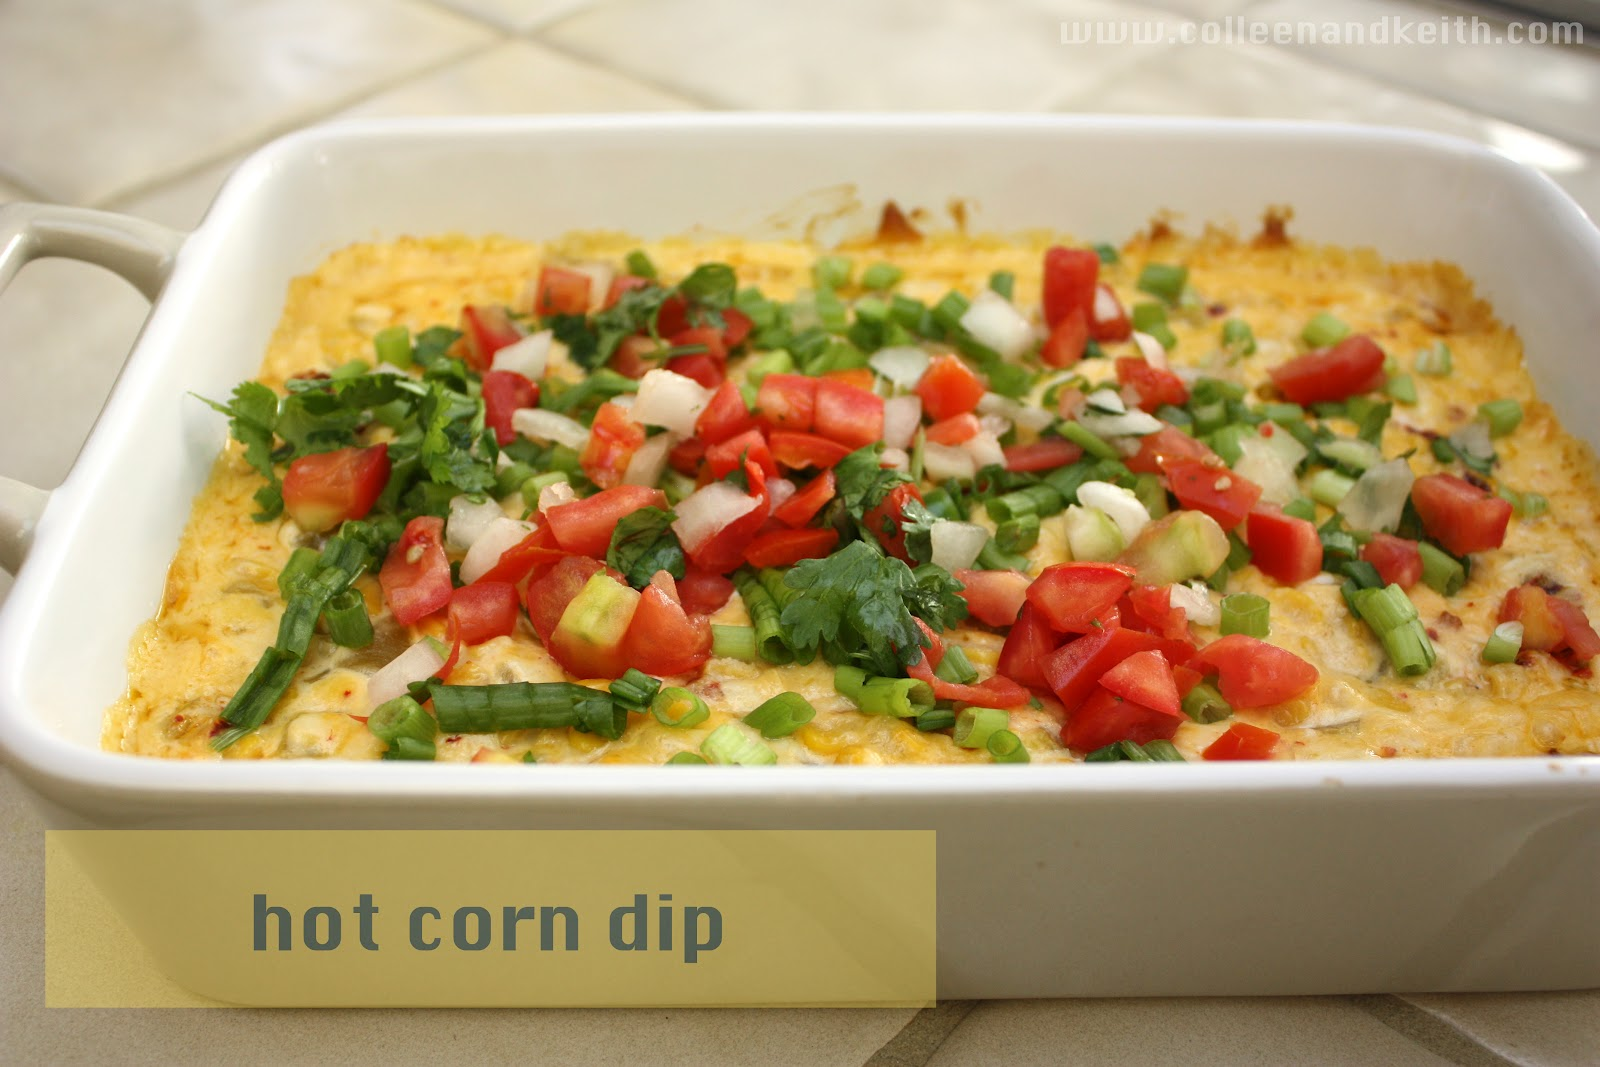 Meet the Sullivans: Recipe: Hot Corn Dip